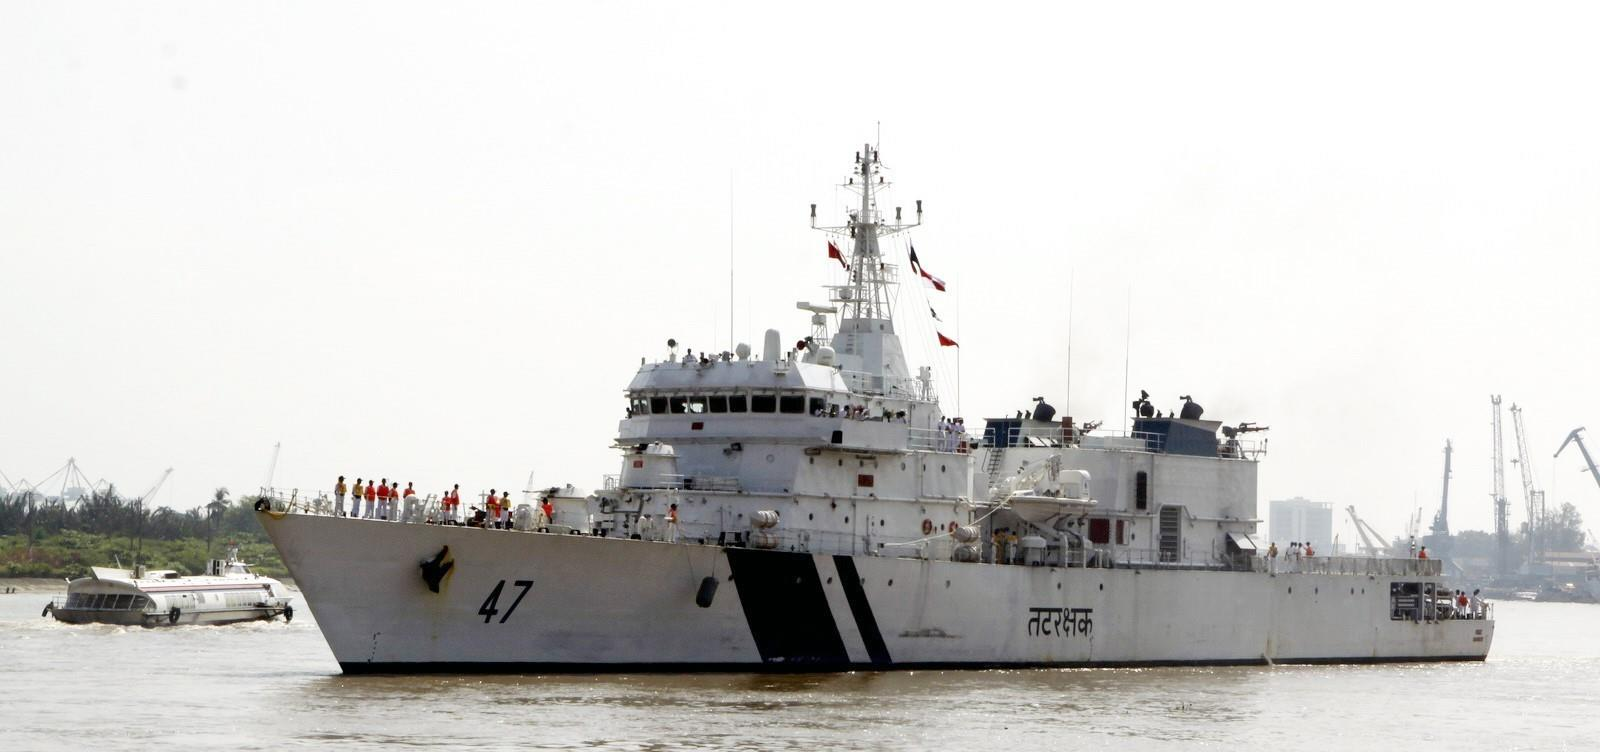 Indian Coast Guard Ship SAMRAT docks at Sai Gon port to start a courtesy visit to Ho Chi Minh City from December 2-6, 2012 (Photo: VNA)